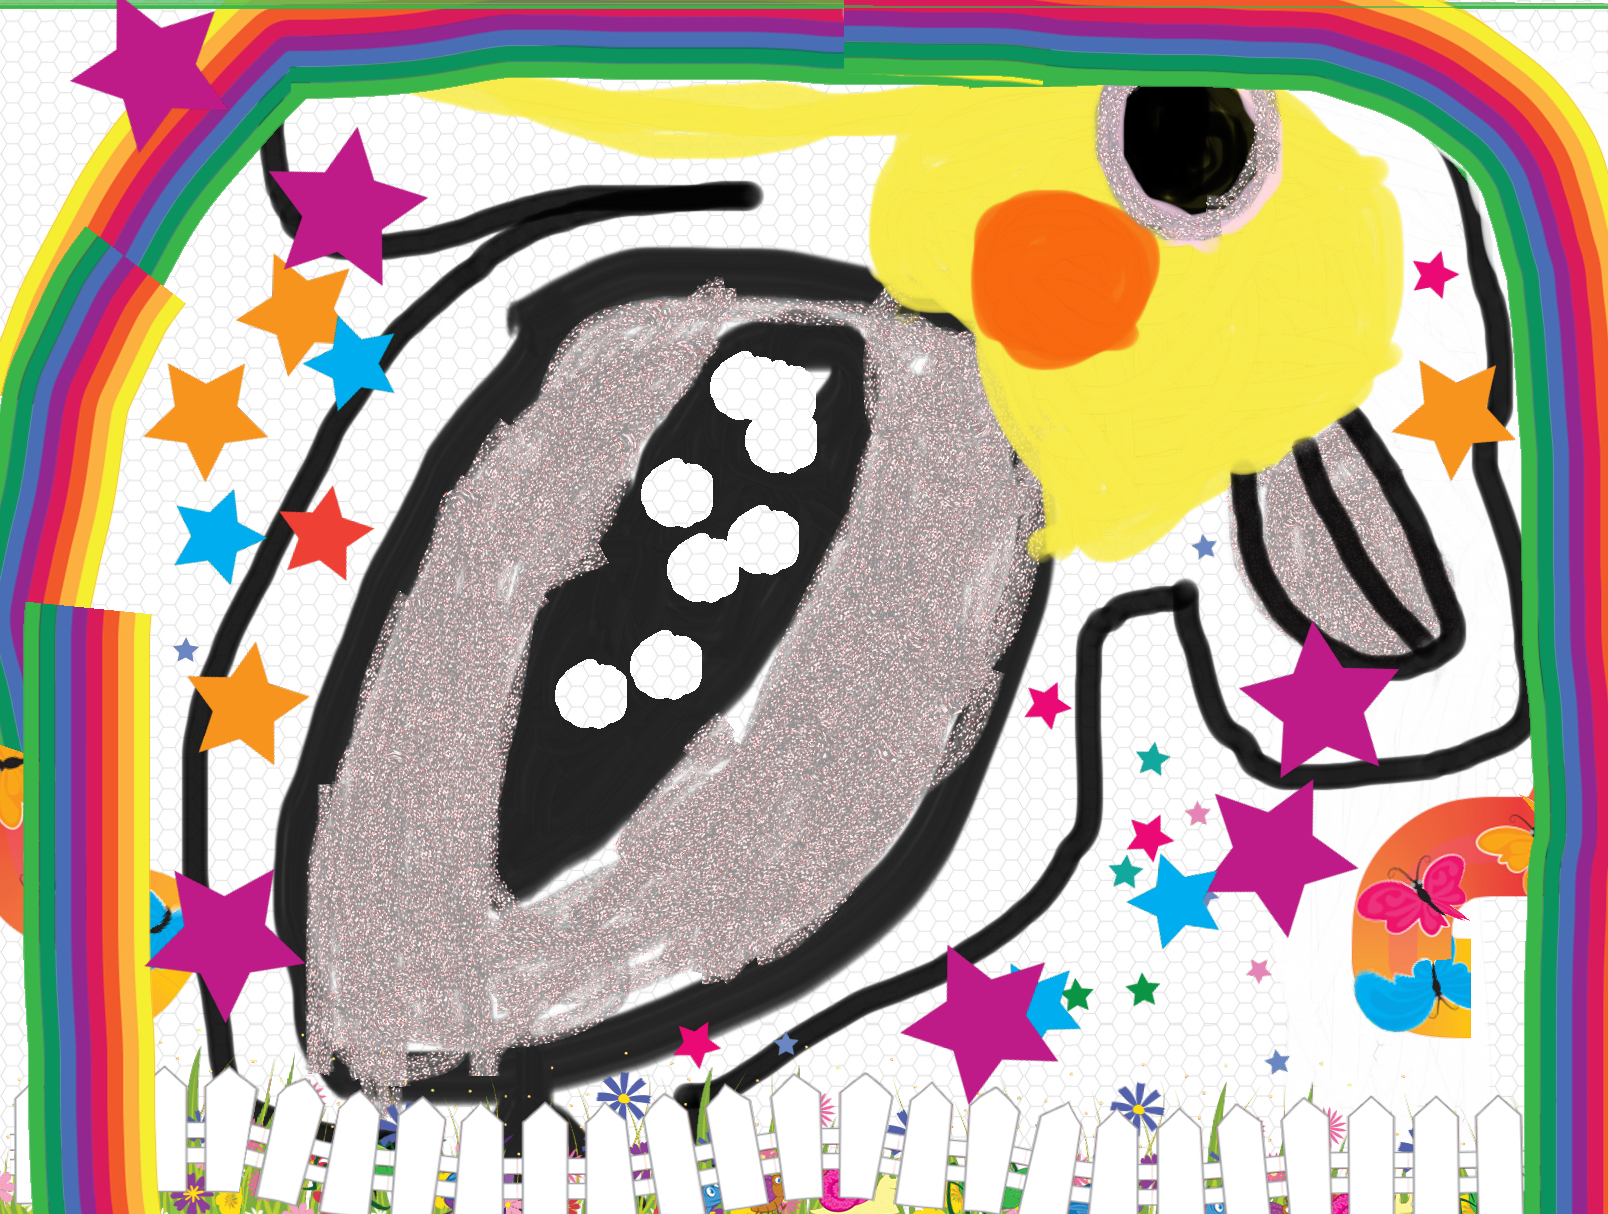 Best Drawing of 21st August. Painted with the PixieDust App